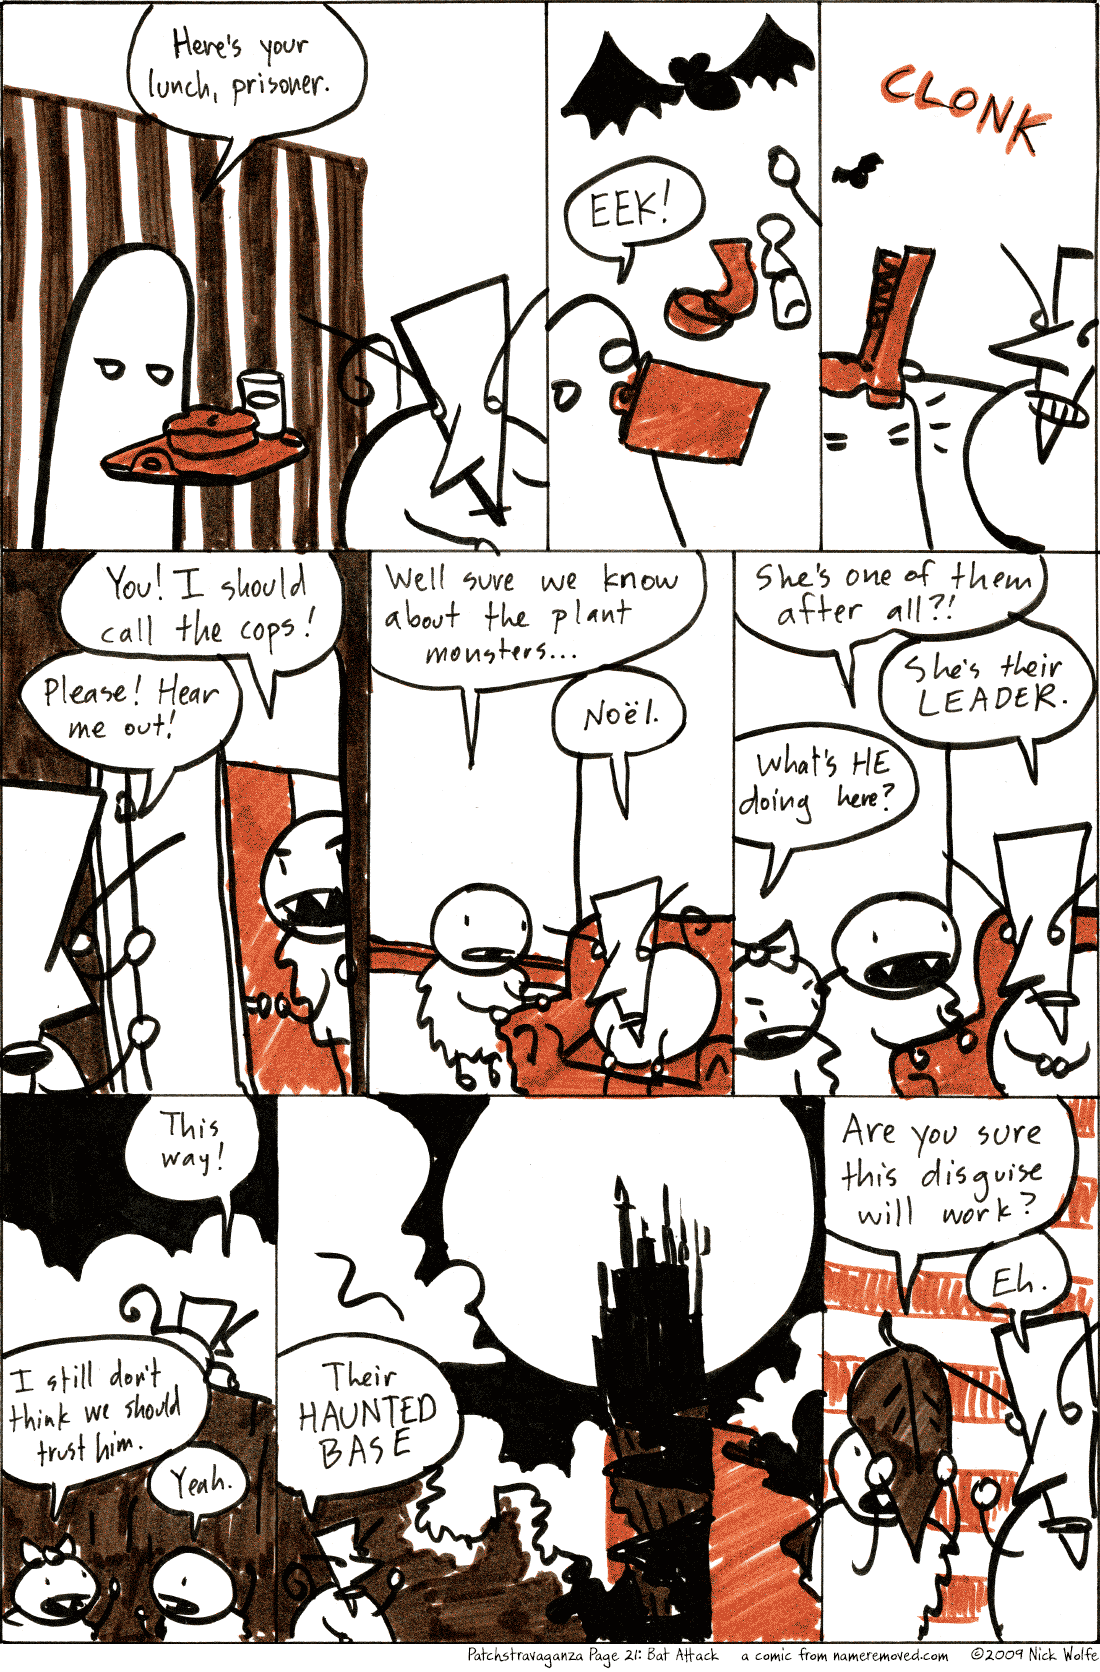 Patchstravaganza Page 21: Bat Attack!